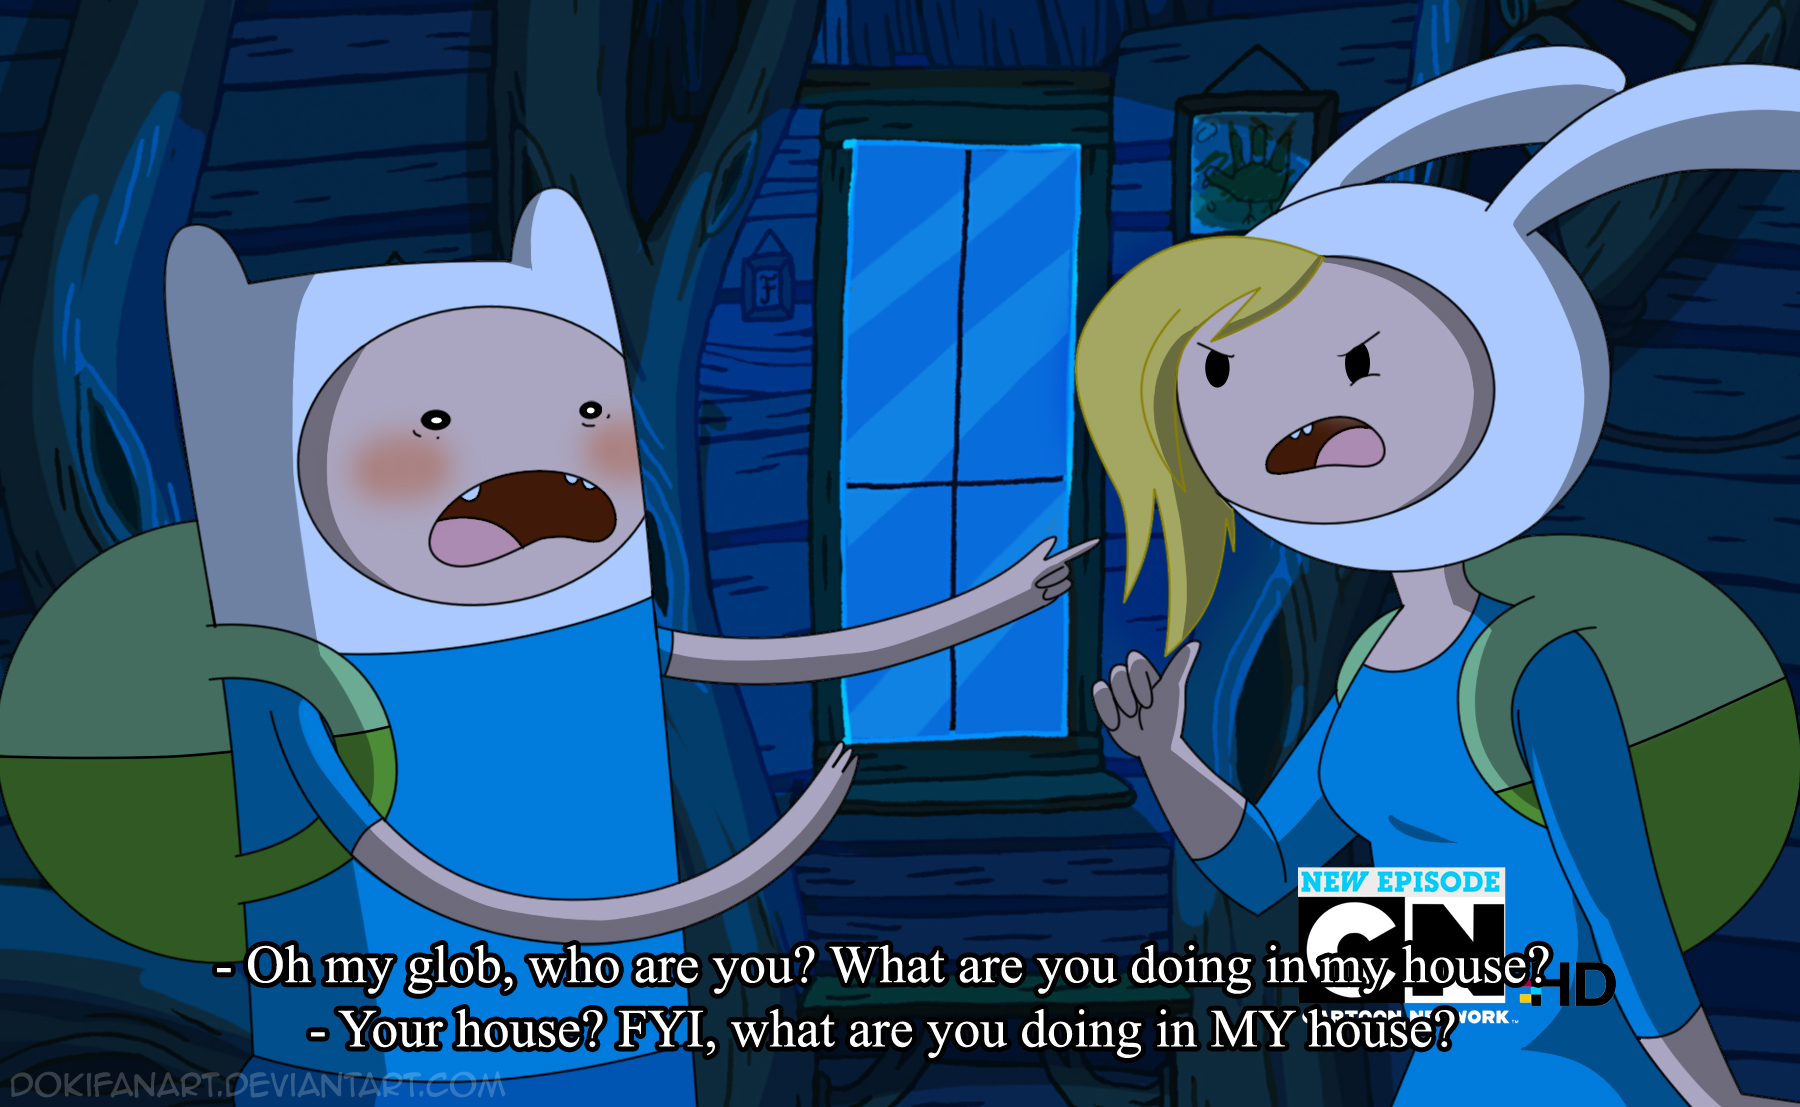 Image adventure time new episode preview screenshot by dokifanart